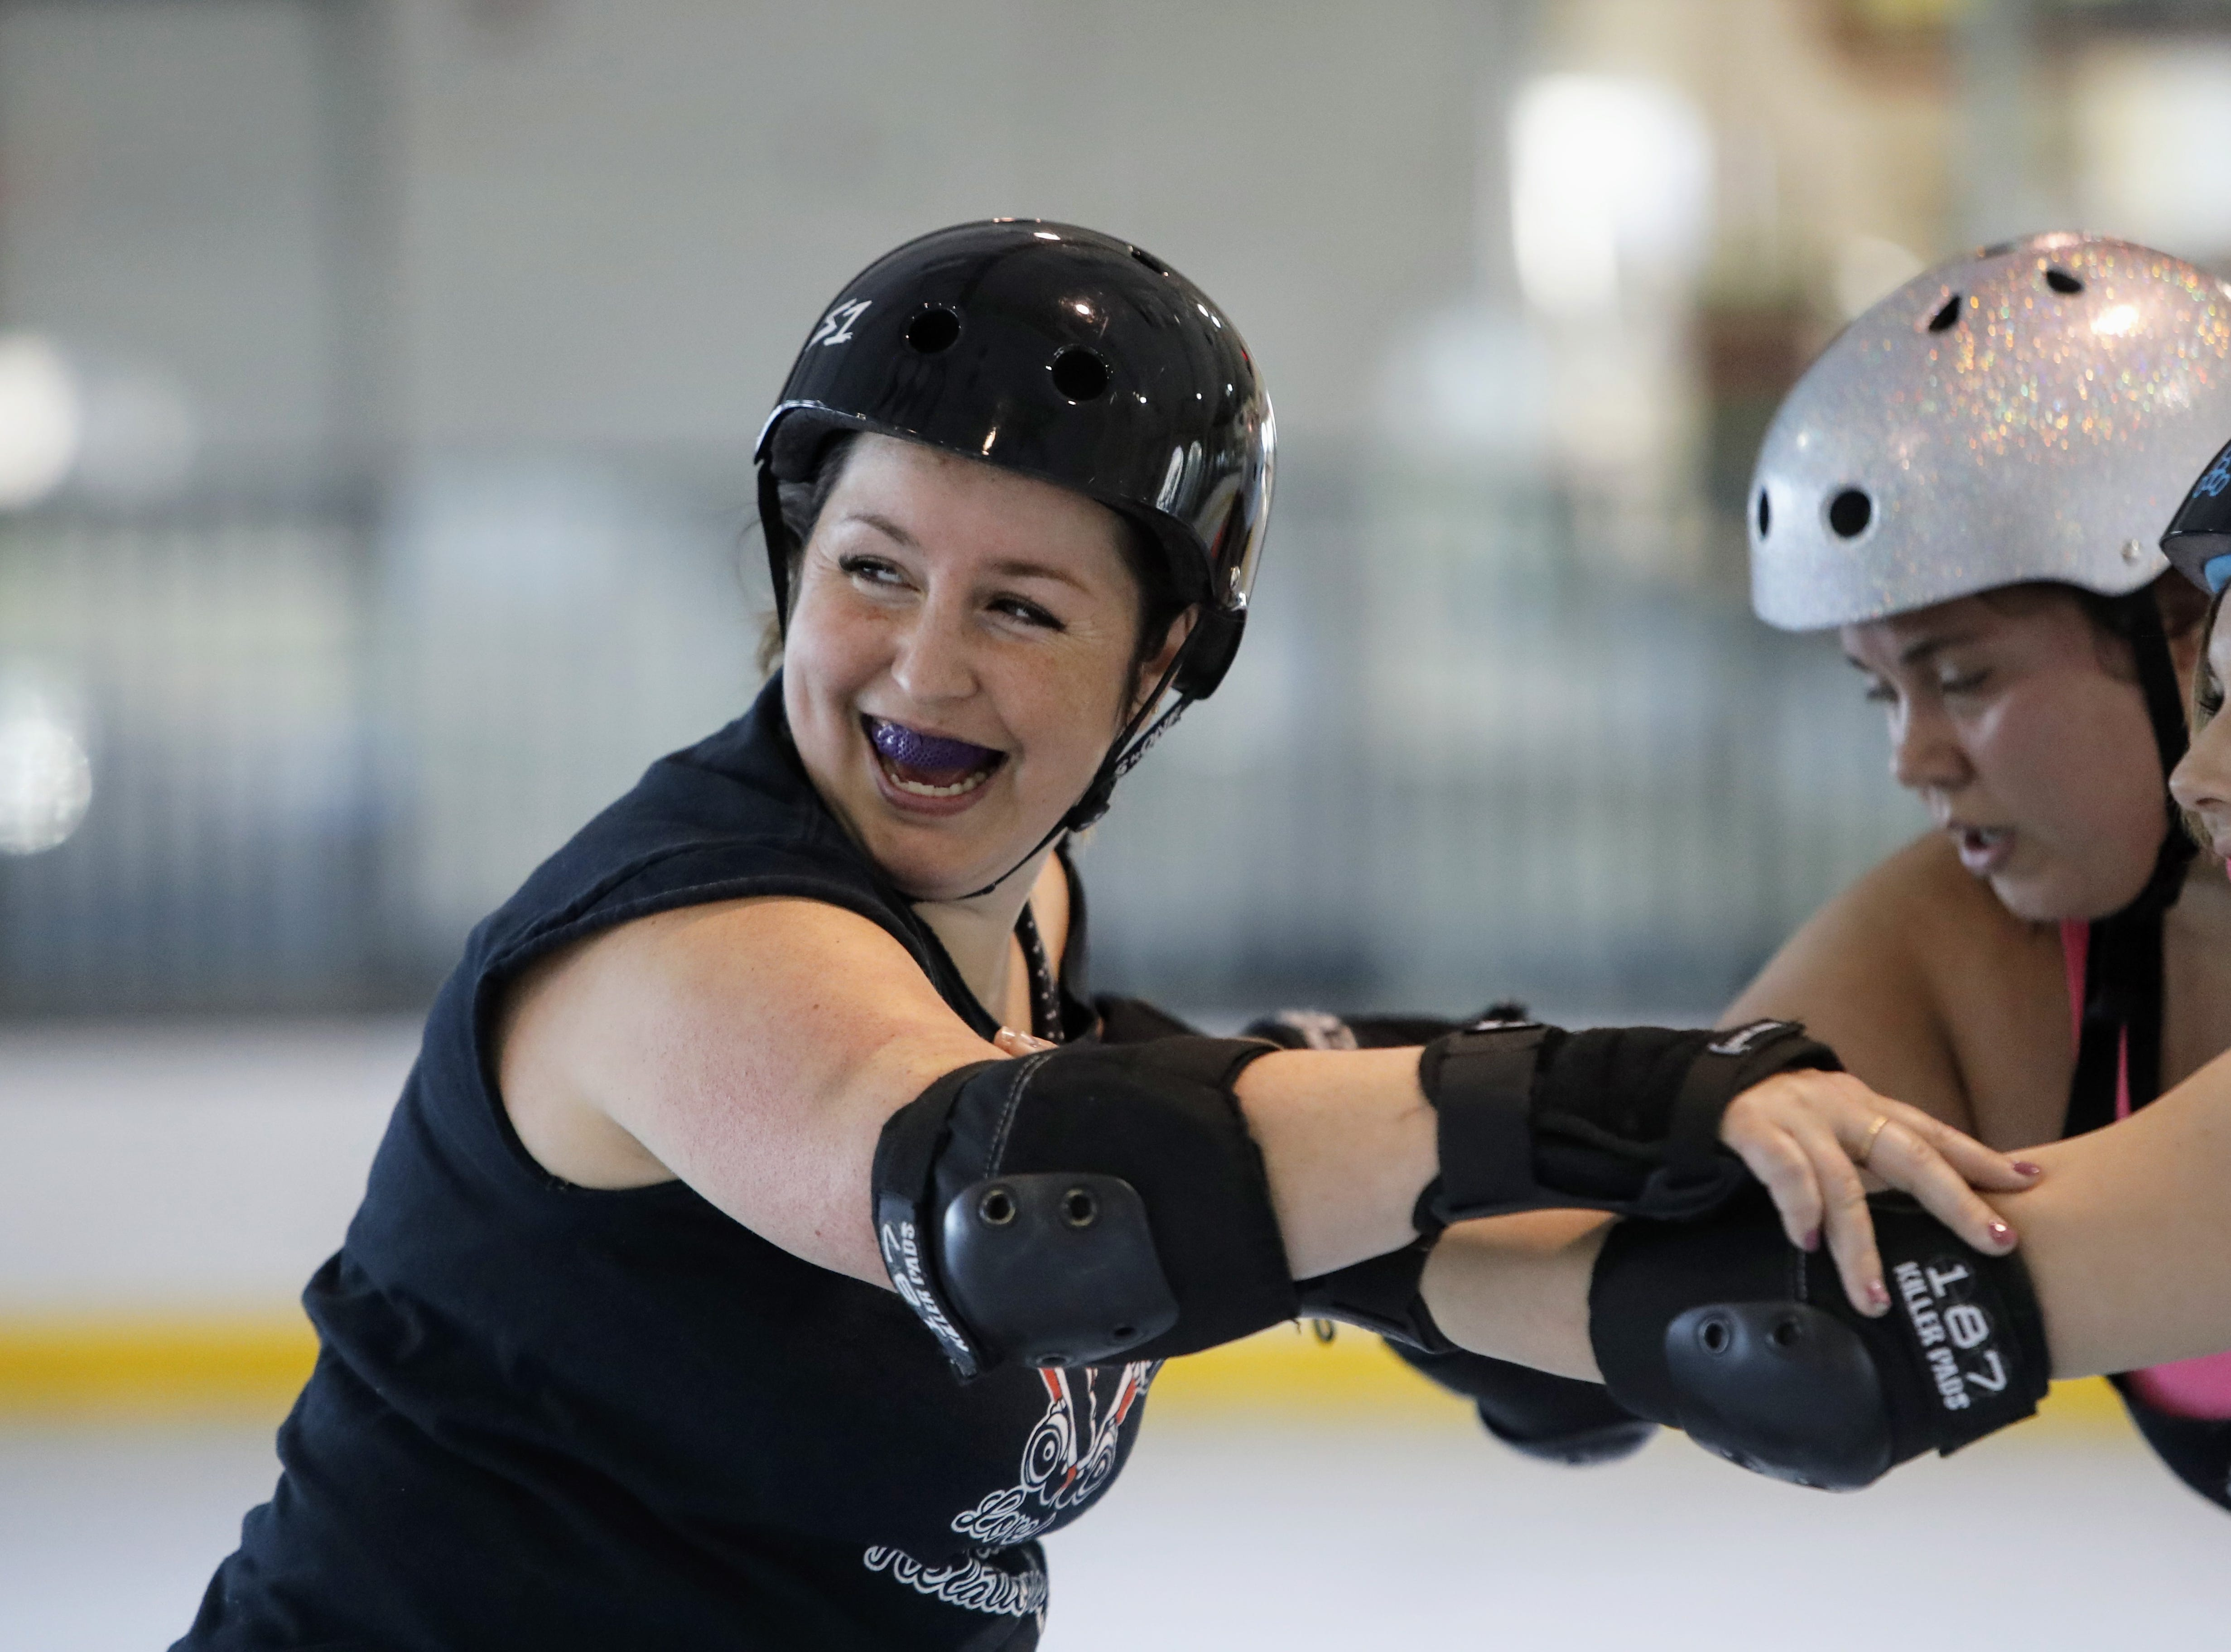 Amanda Harter (left), who goes by the skater nickname Swift D. Mize, participates in a drill during a Shasta Roller Derby practice at Big League Dreams in Redding on Wednesday, April 10.